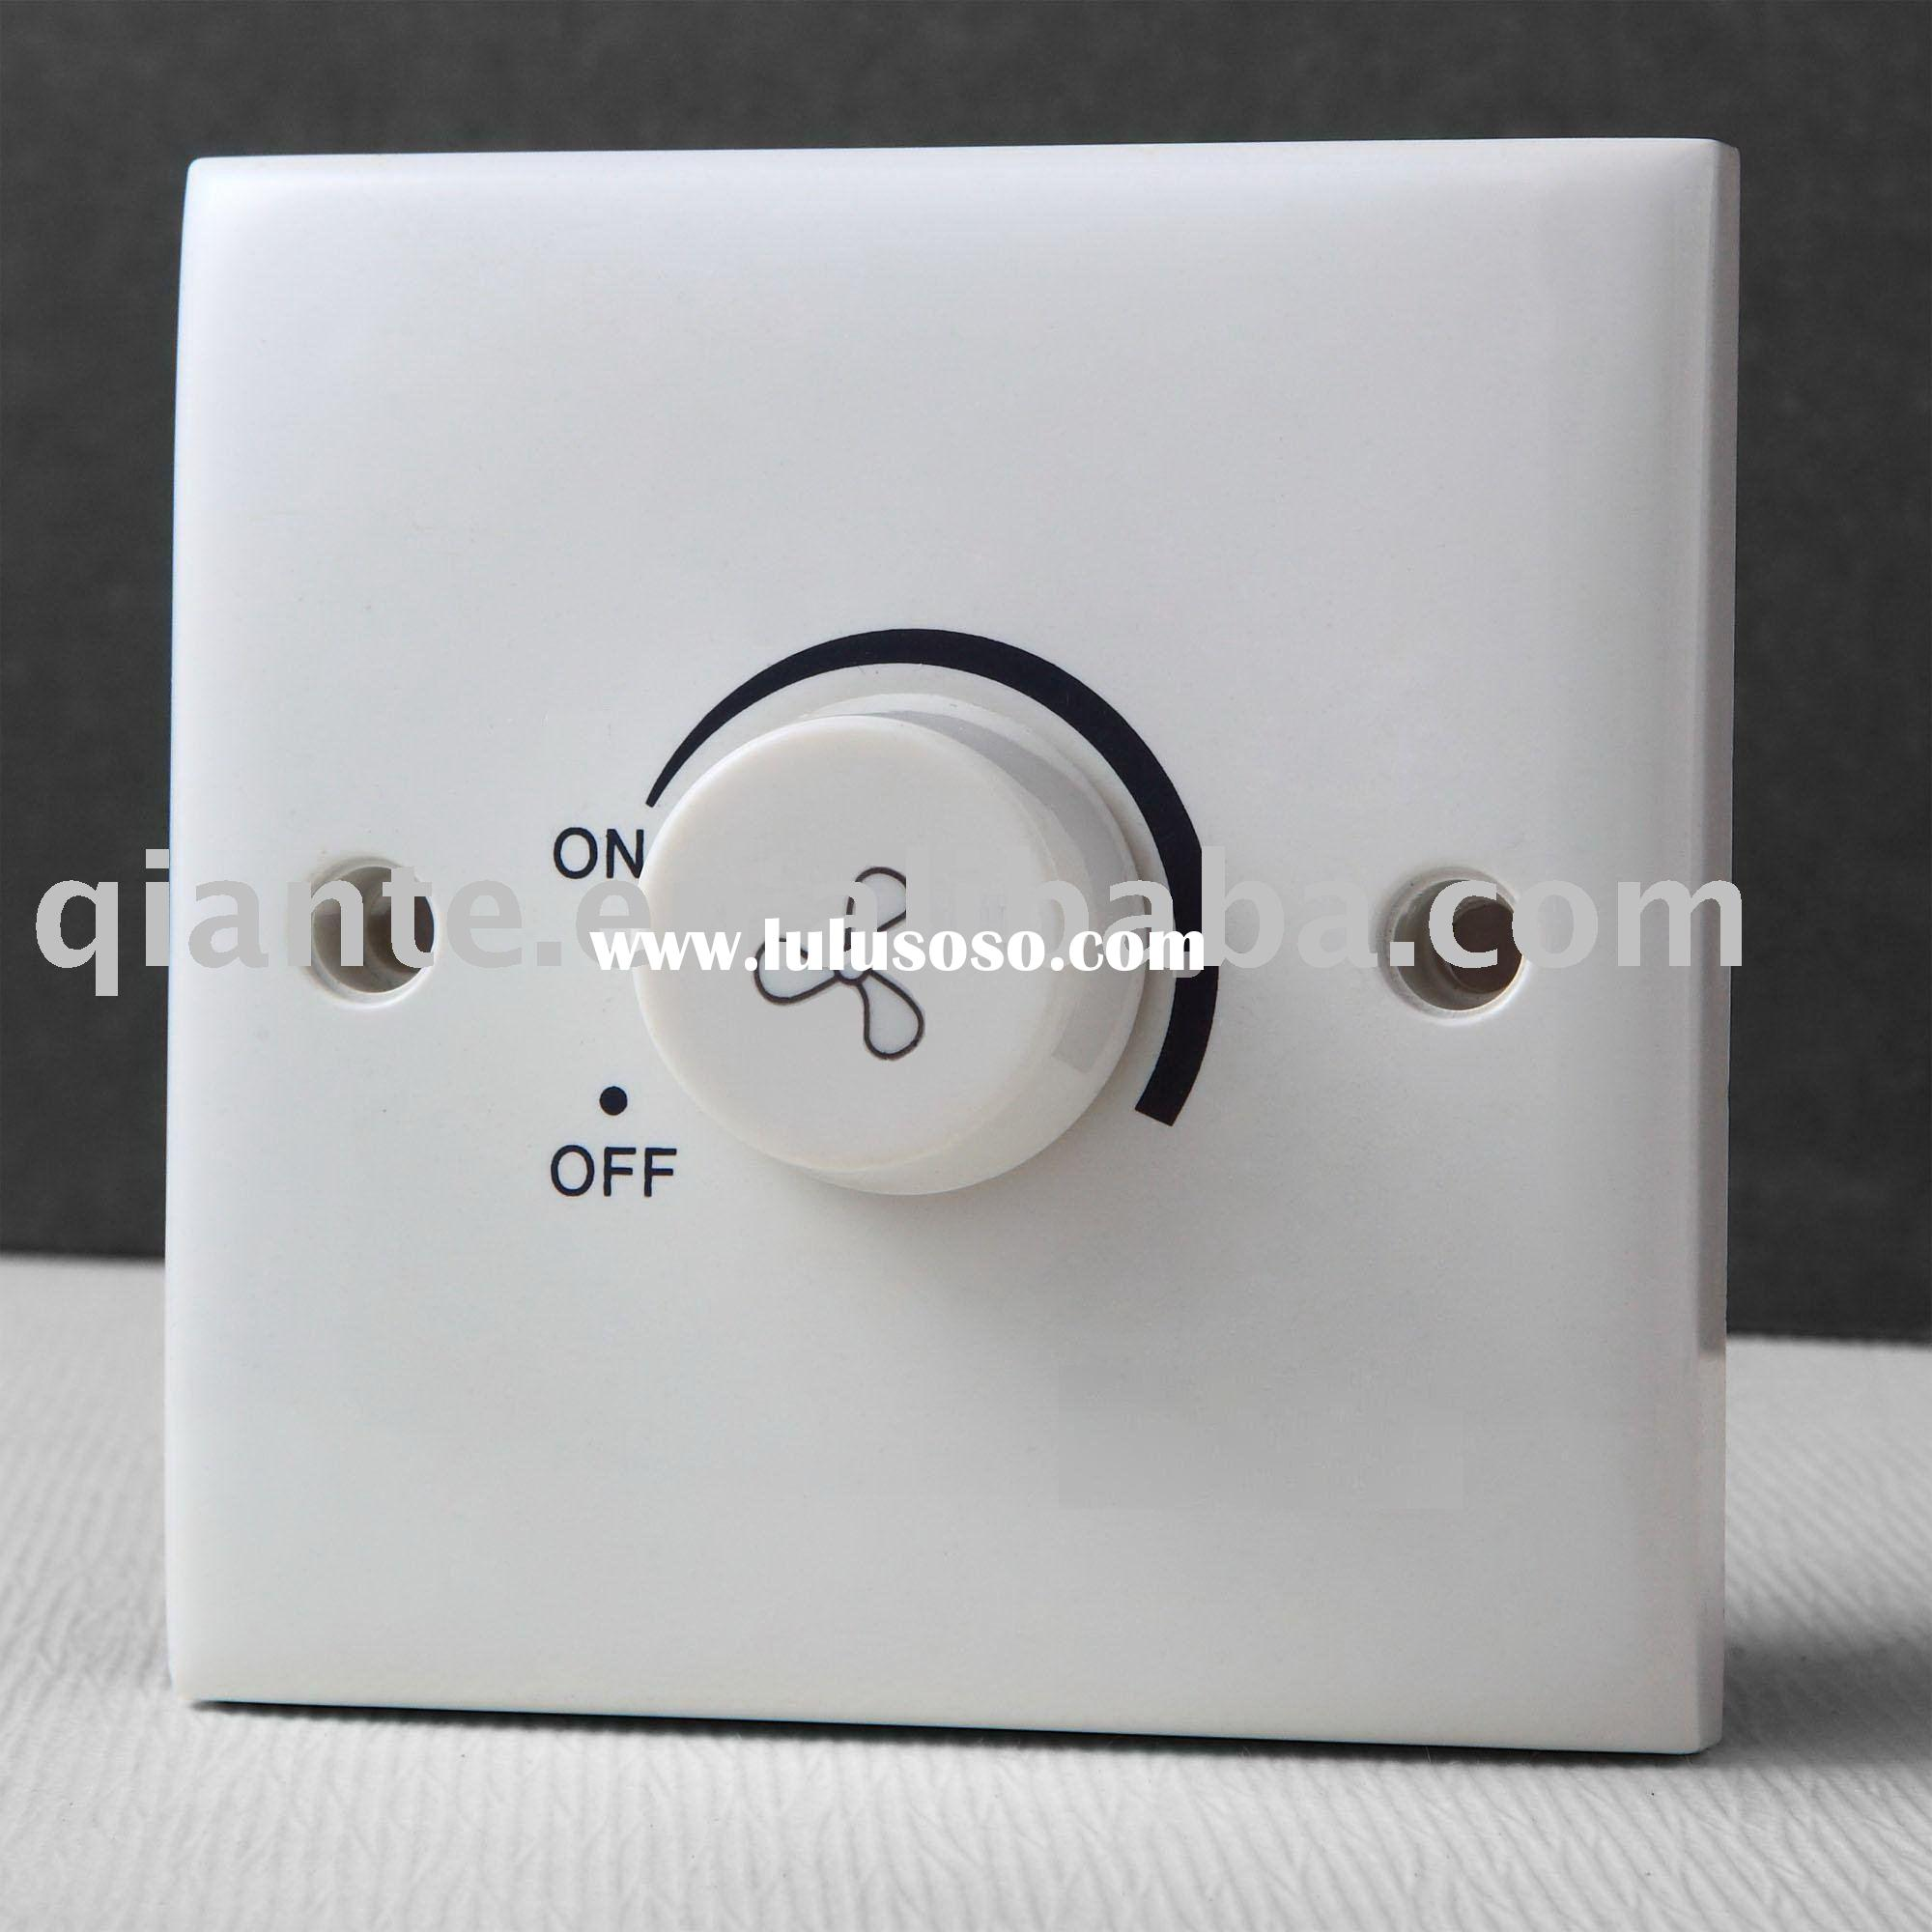 Fan dimmer switch for sale Price China Manufacturer Supplier